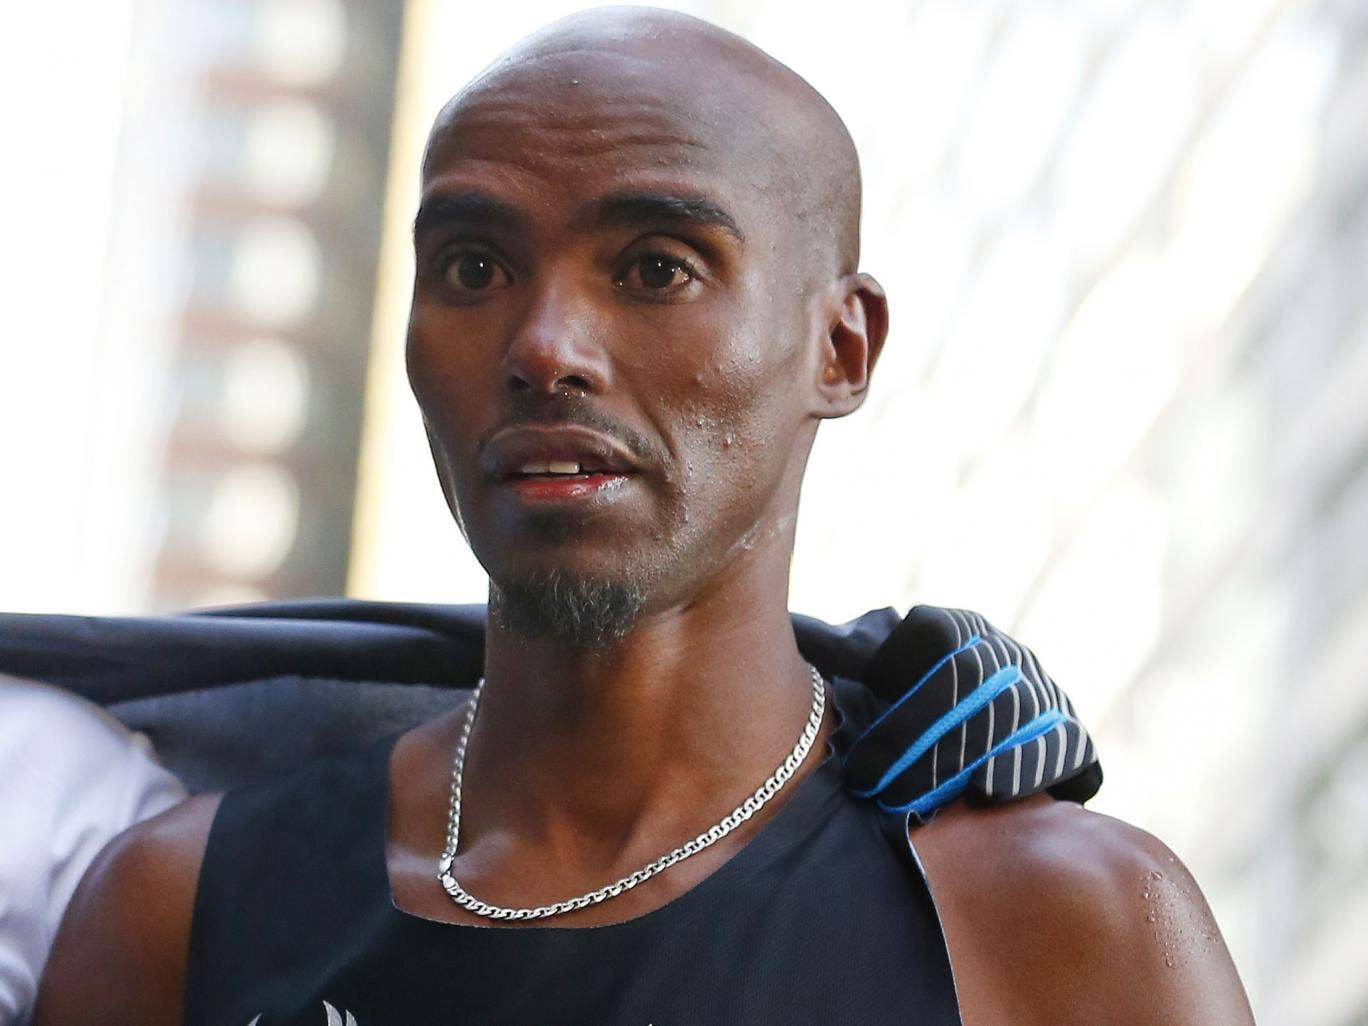 Mo Farah pictured shortly before collapsing at the finish line in New York on Sunday. He recovered to attend the press conference afterwards